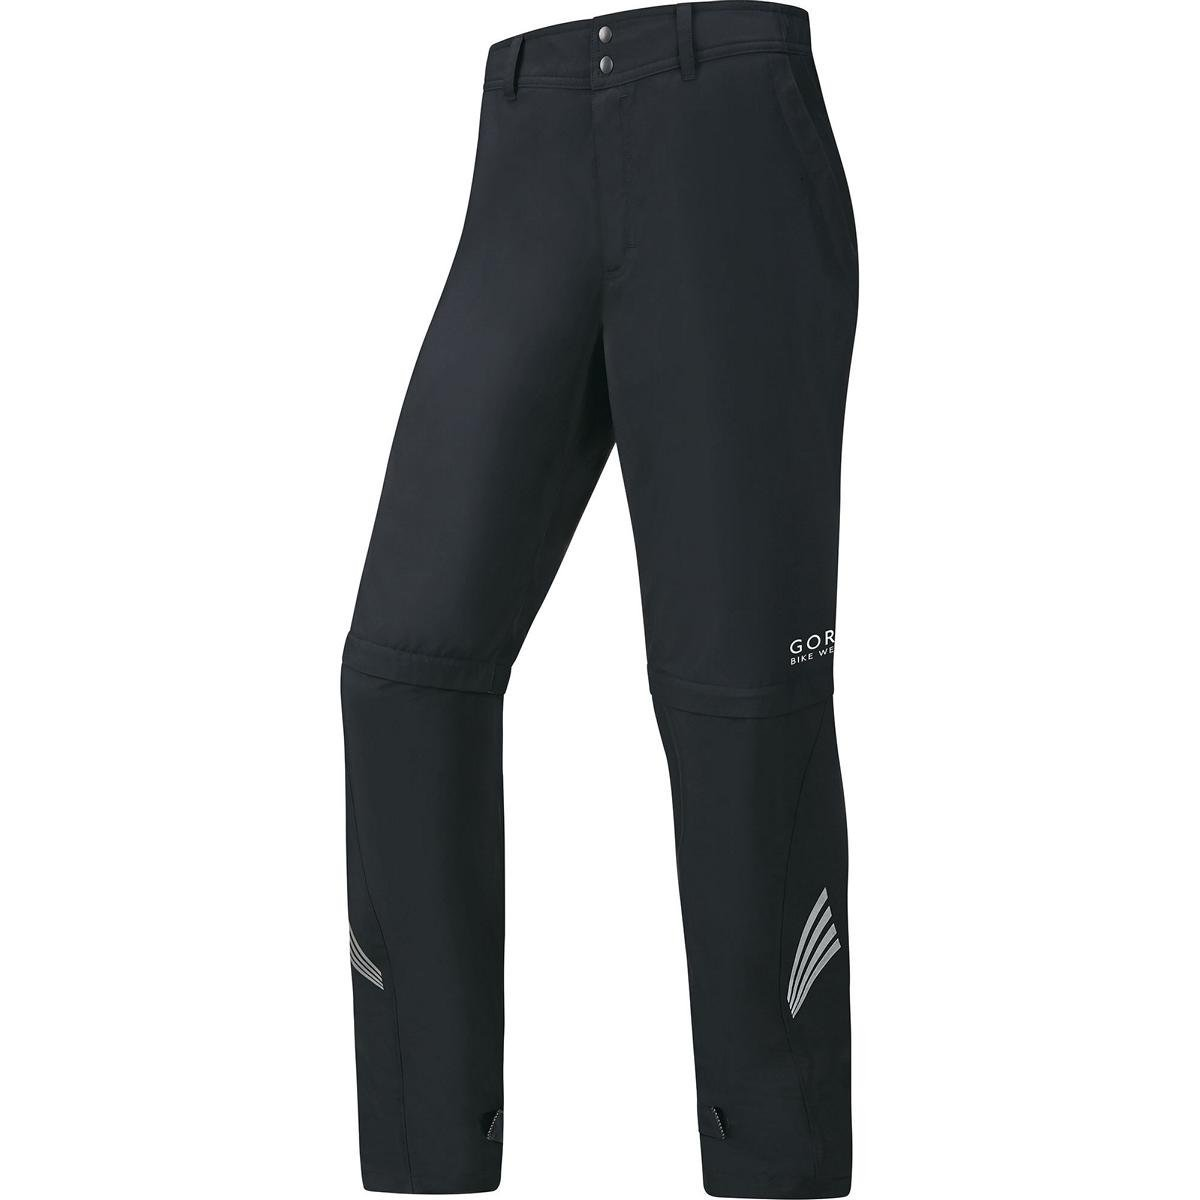 GORE BIKE WEAR 2 in 1 Men's Long Cycling Rain Overpants, GORE WINDSTOPPER, ELEMENT WS AS Zip-Off Pants, Size S, Black, PWZELE